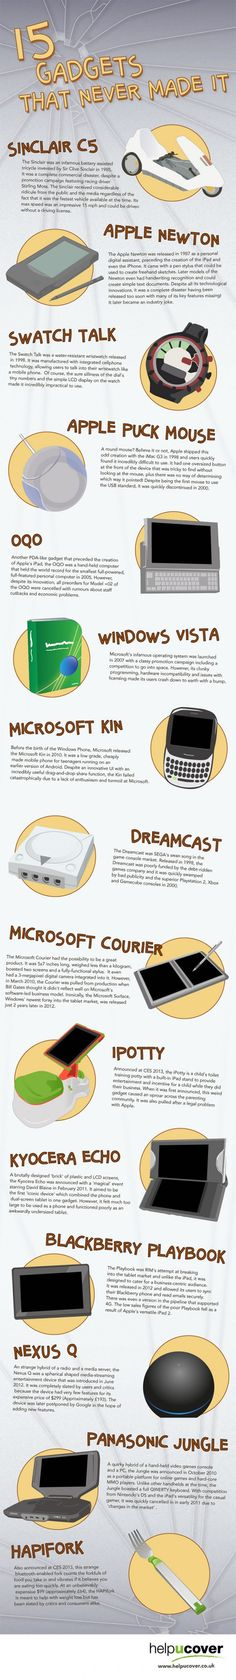 #INFOGRAPHIC: 15 GADGETS THAT NEVER MADE IT